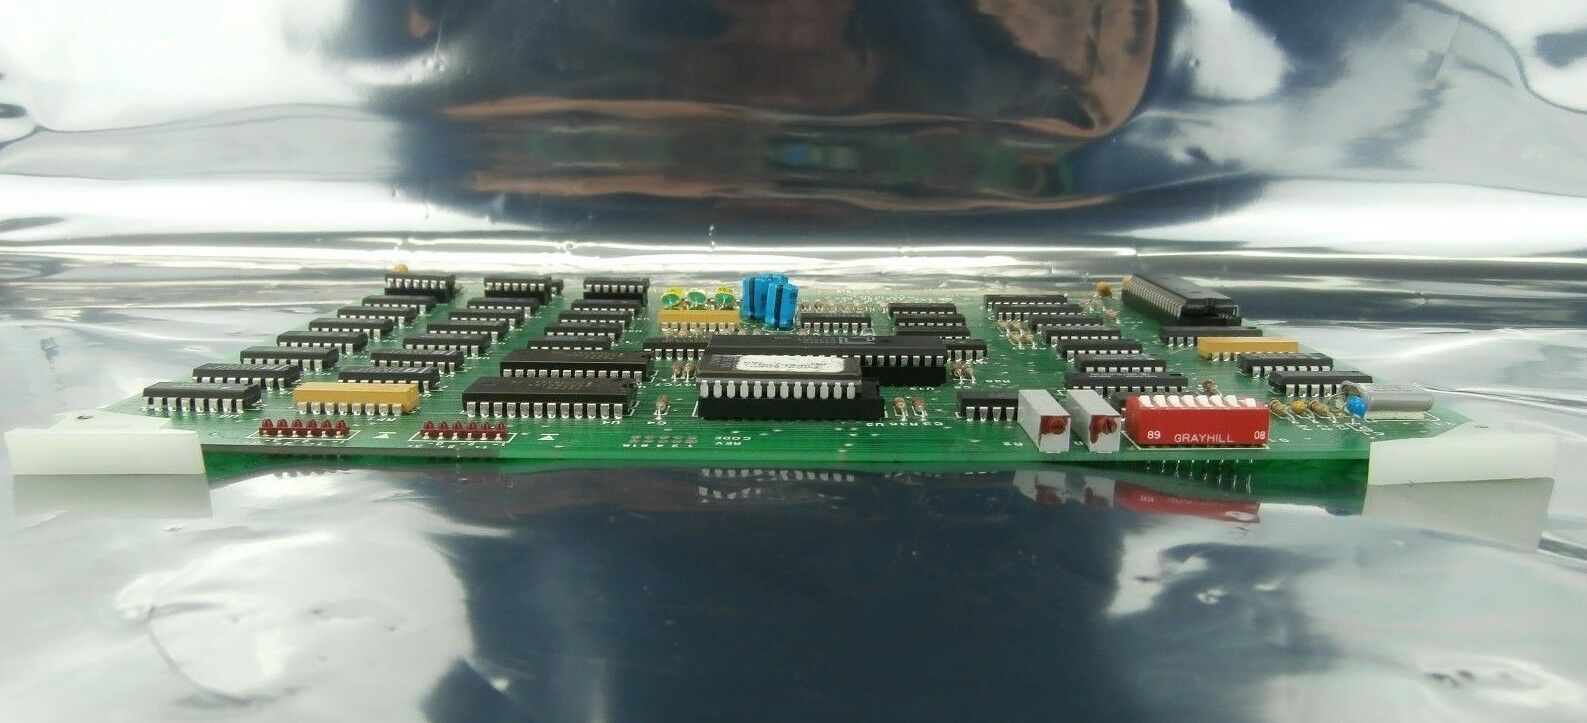 SCI Solid Controls 428-400 Firing Controller Board PCB Card 428-399 Used Working